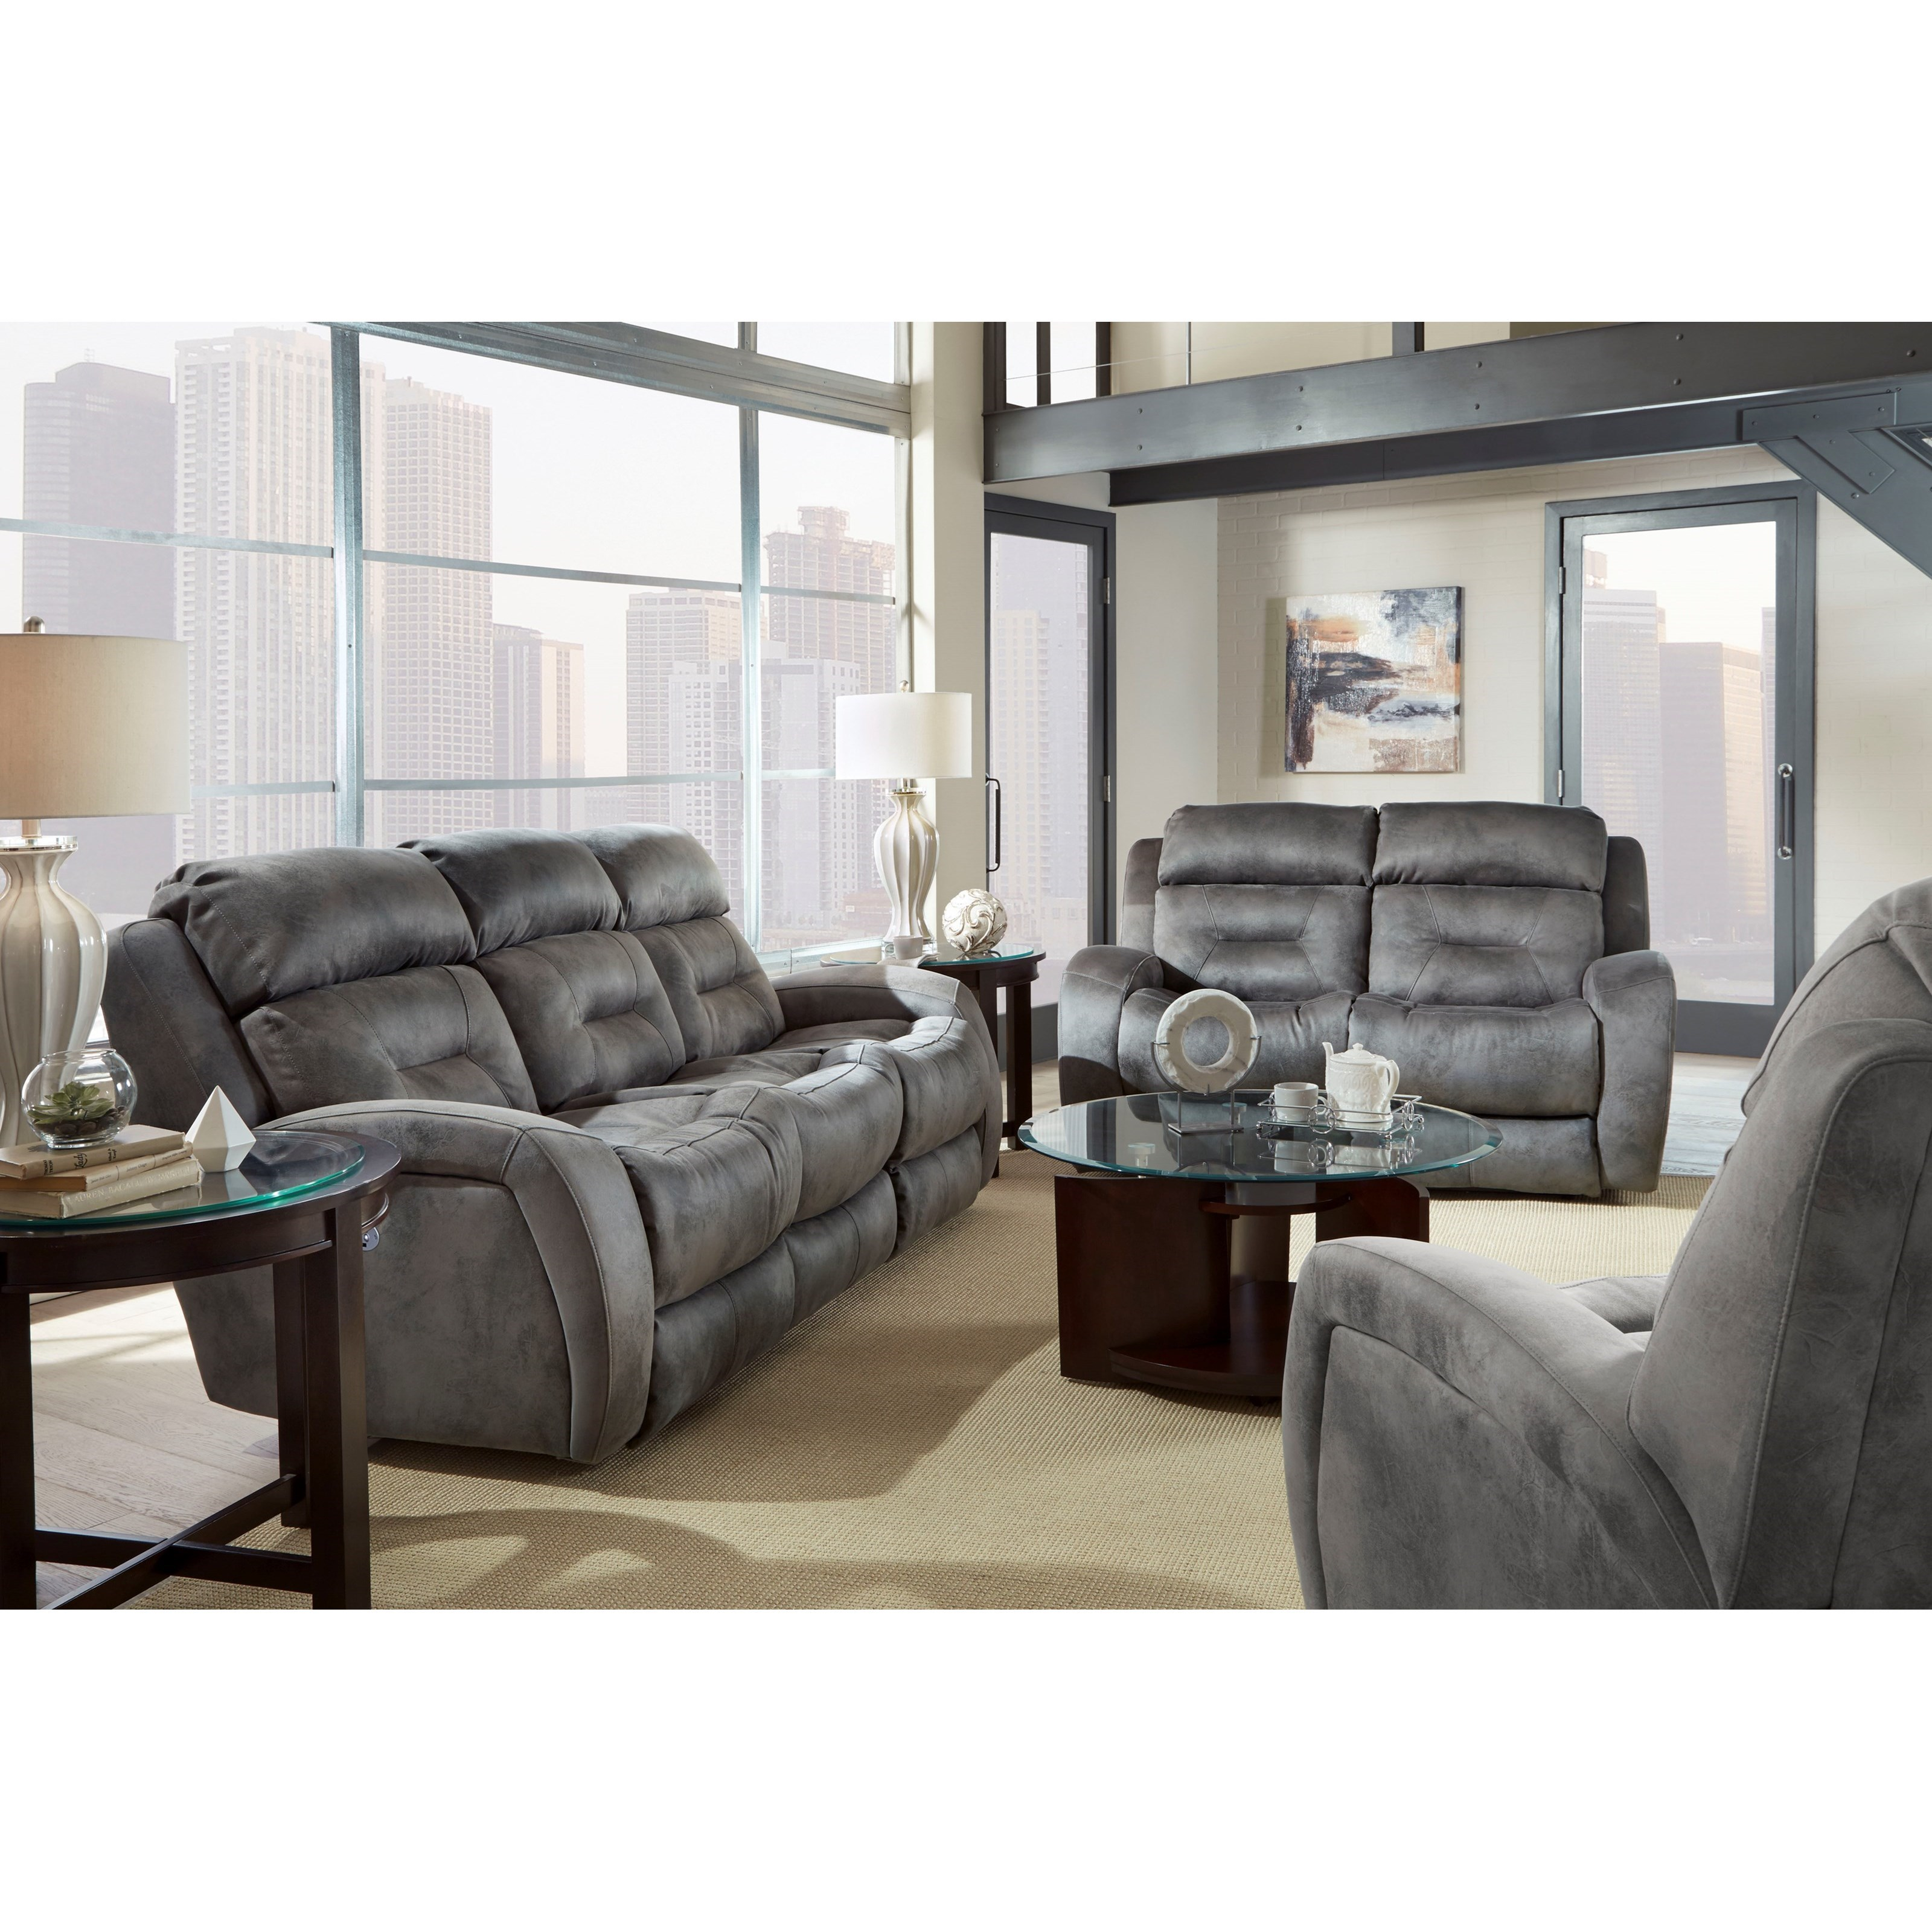 Southern Motion Showcase 316 51p Double Reclining Loveseat